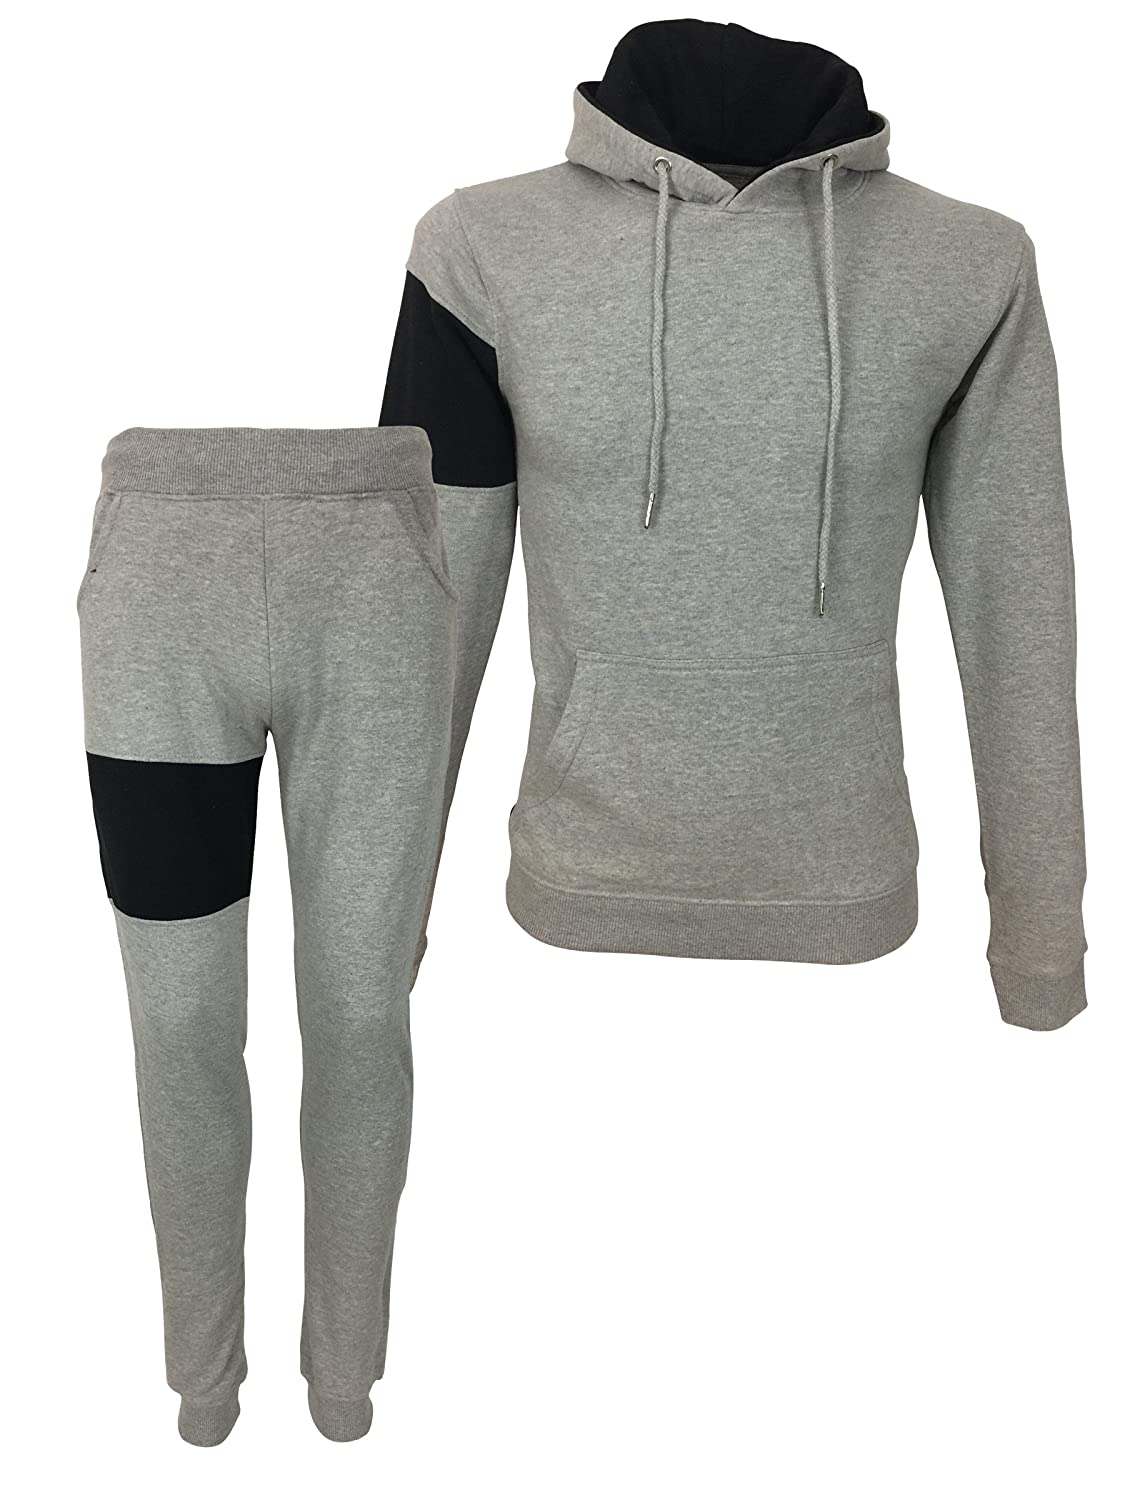 King Kouture Herren Trainingsanzug grau grau Small